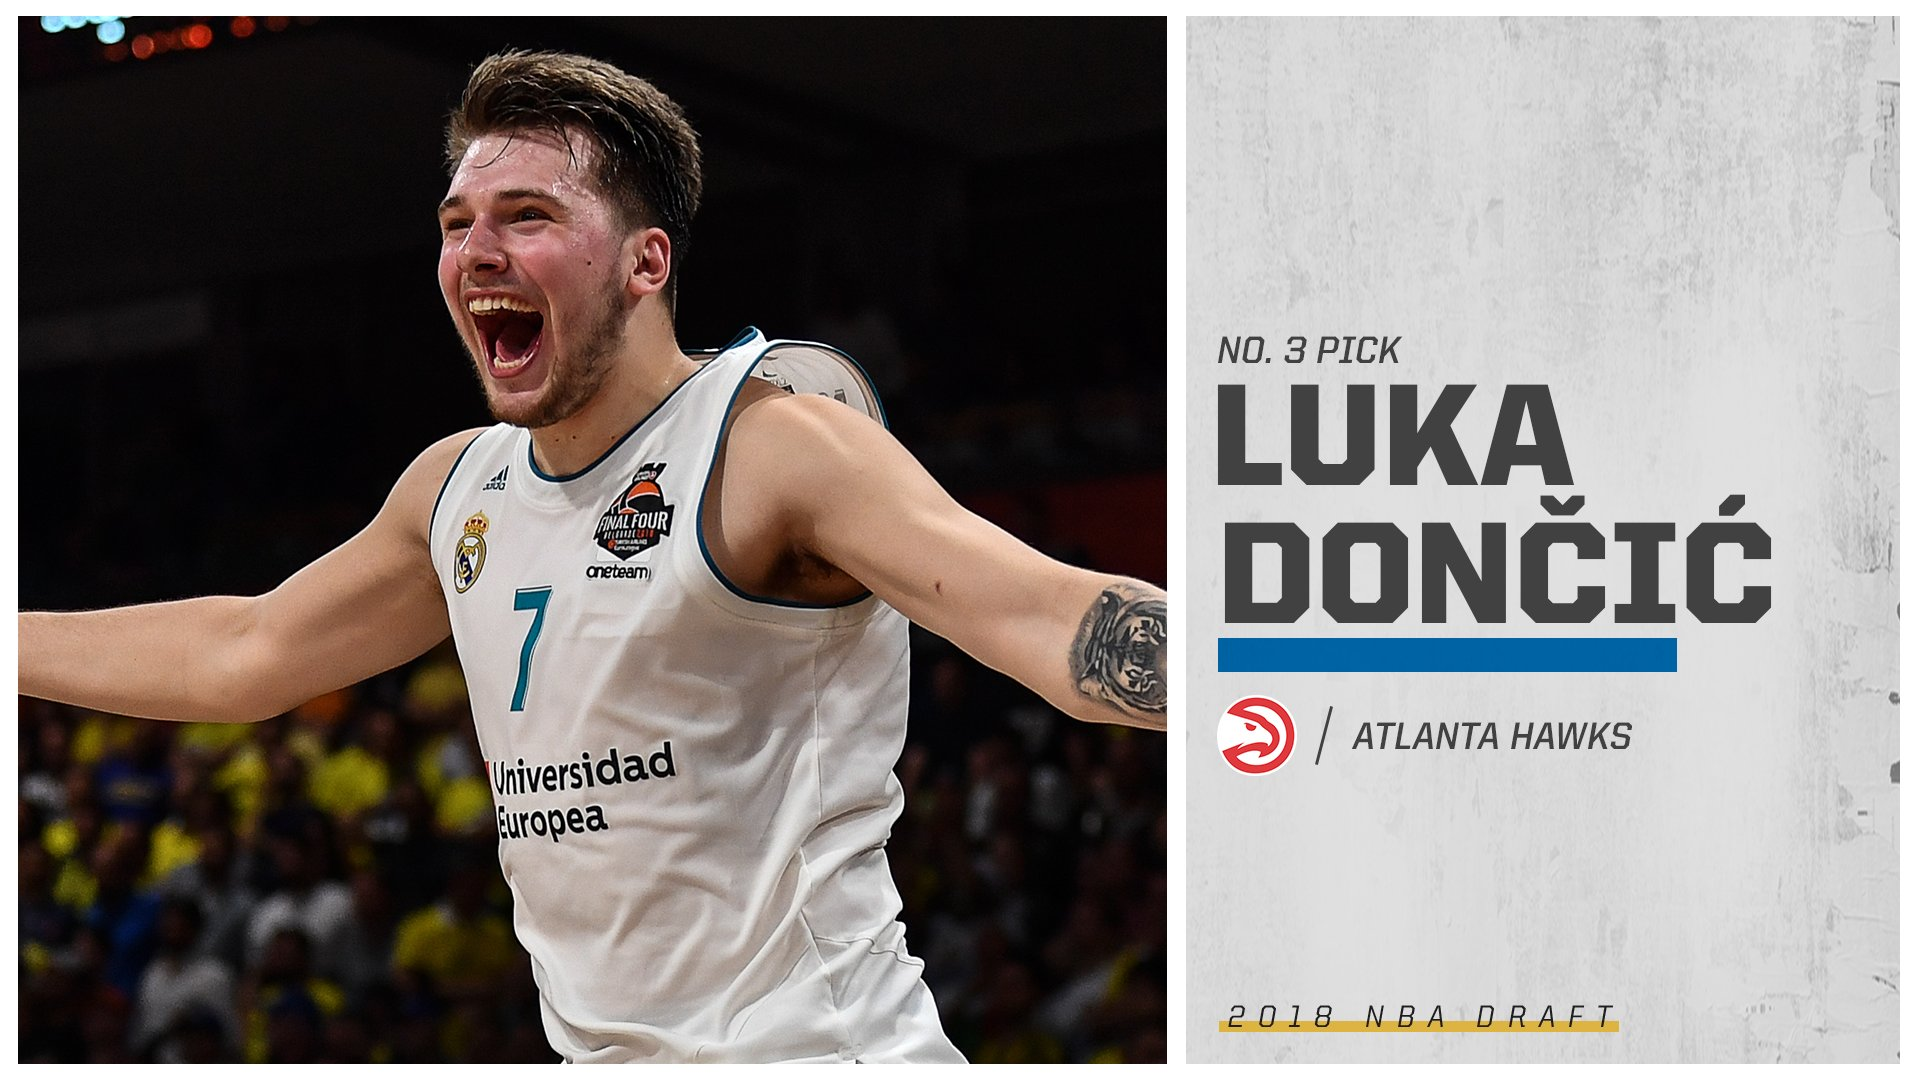 From Slovenia to Madrid to Atlanta.  The Hawks take Luka Doncic at No. 3! https://t.co/w4YRAt9THj